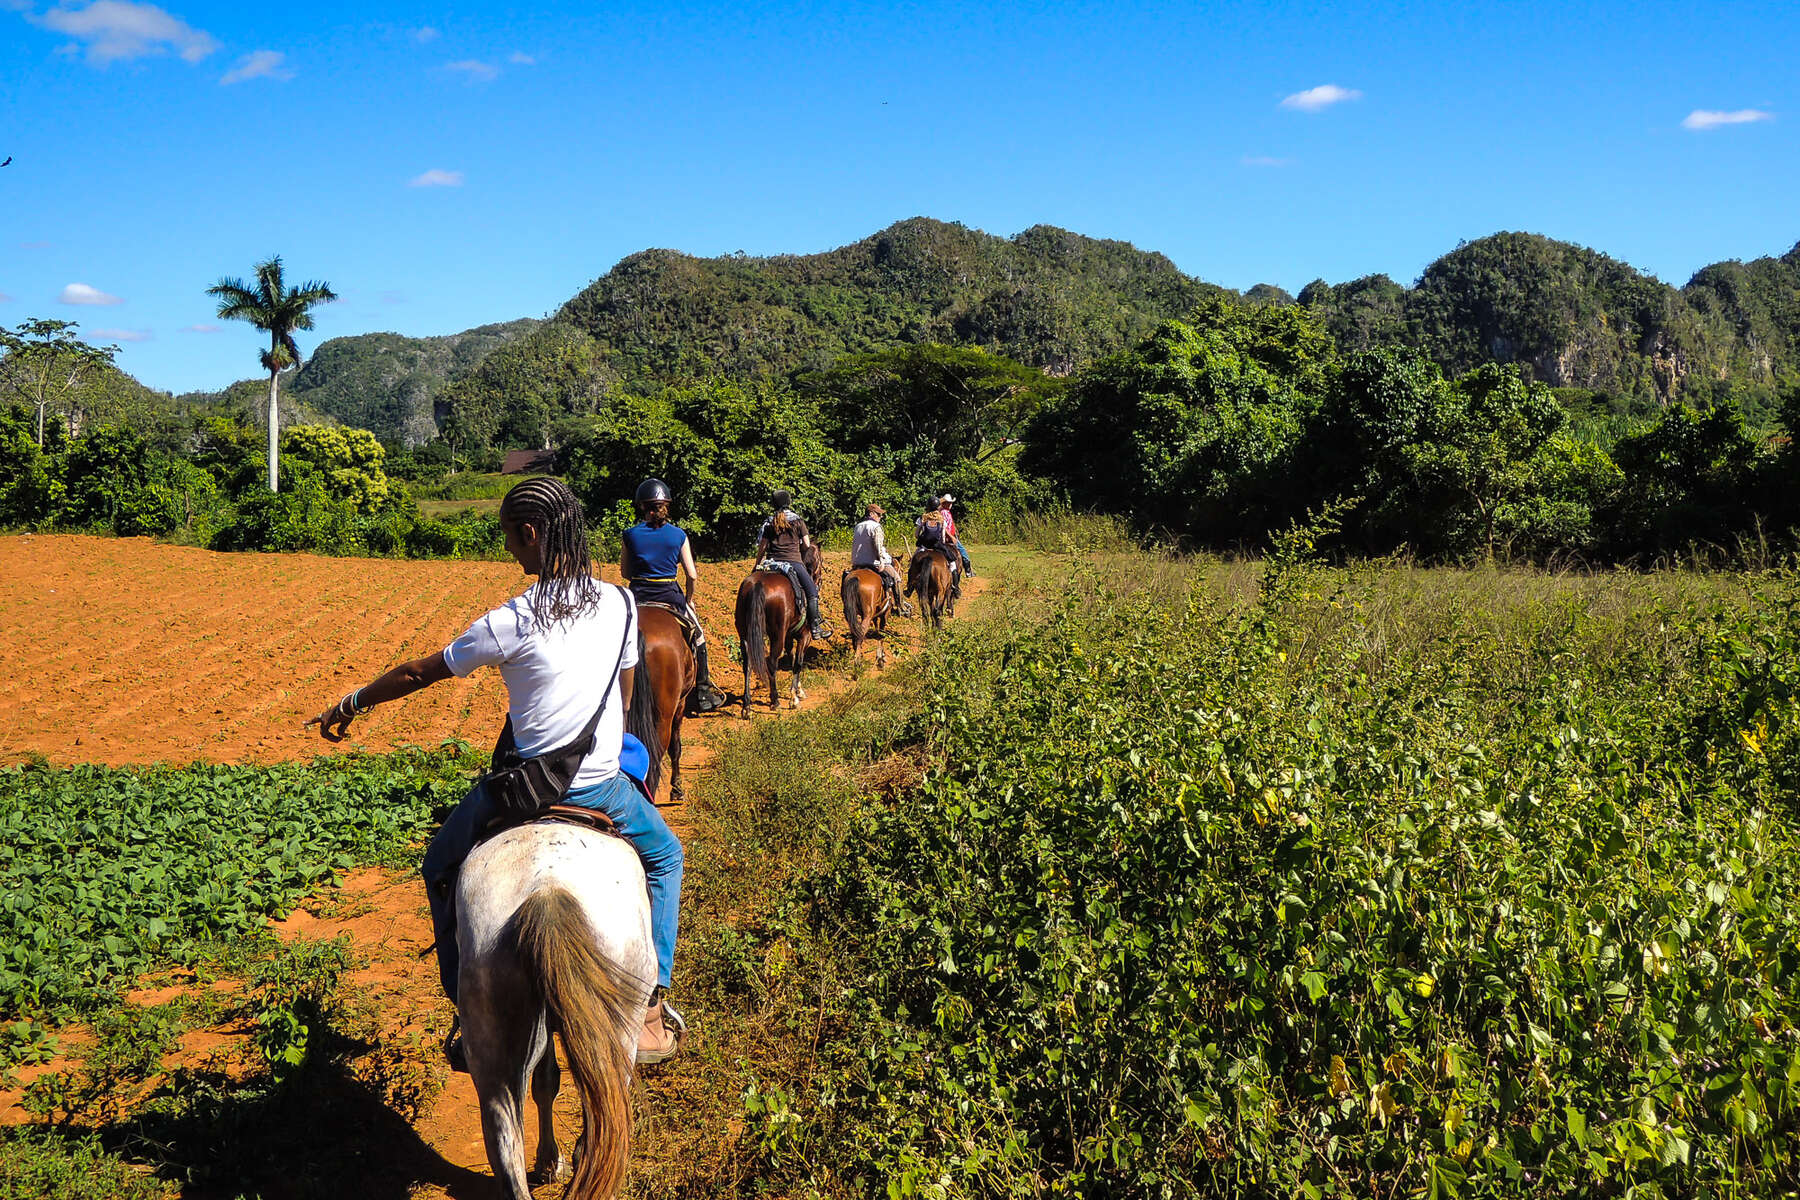 Riders riding through plantations in Cuba.